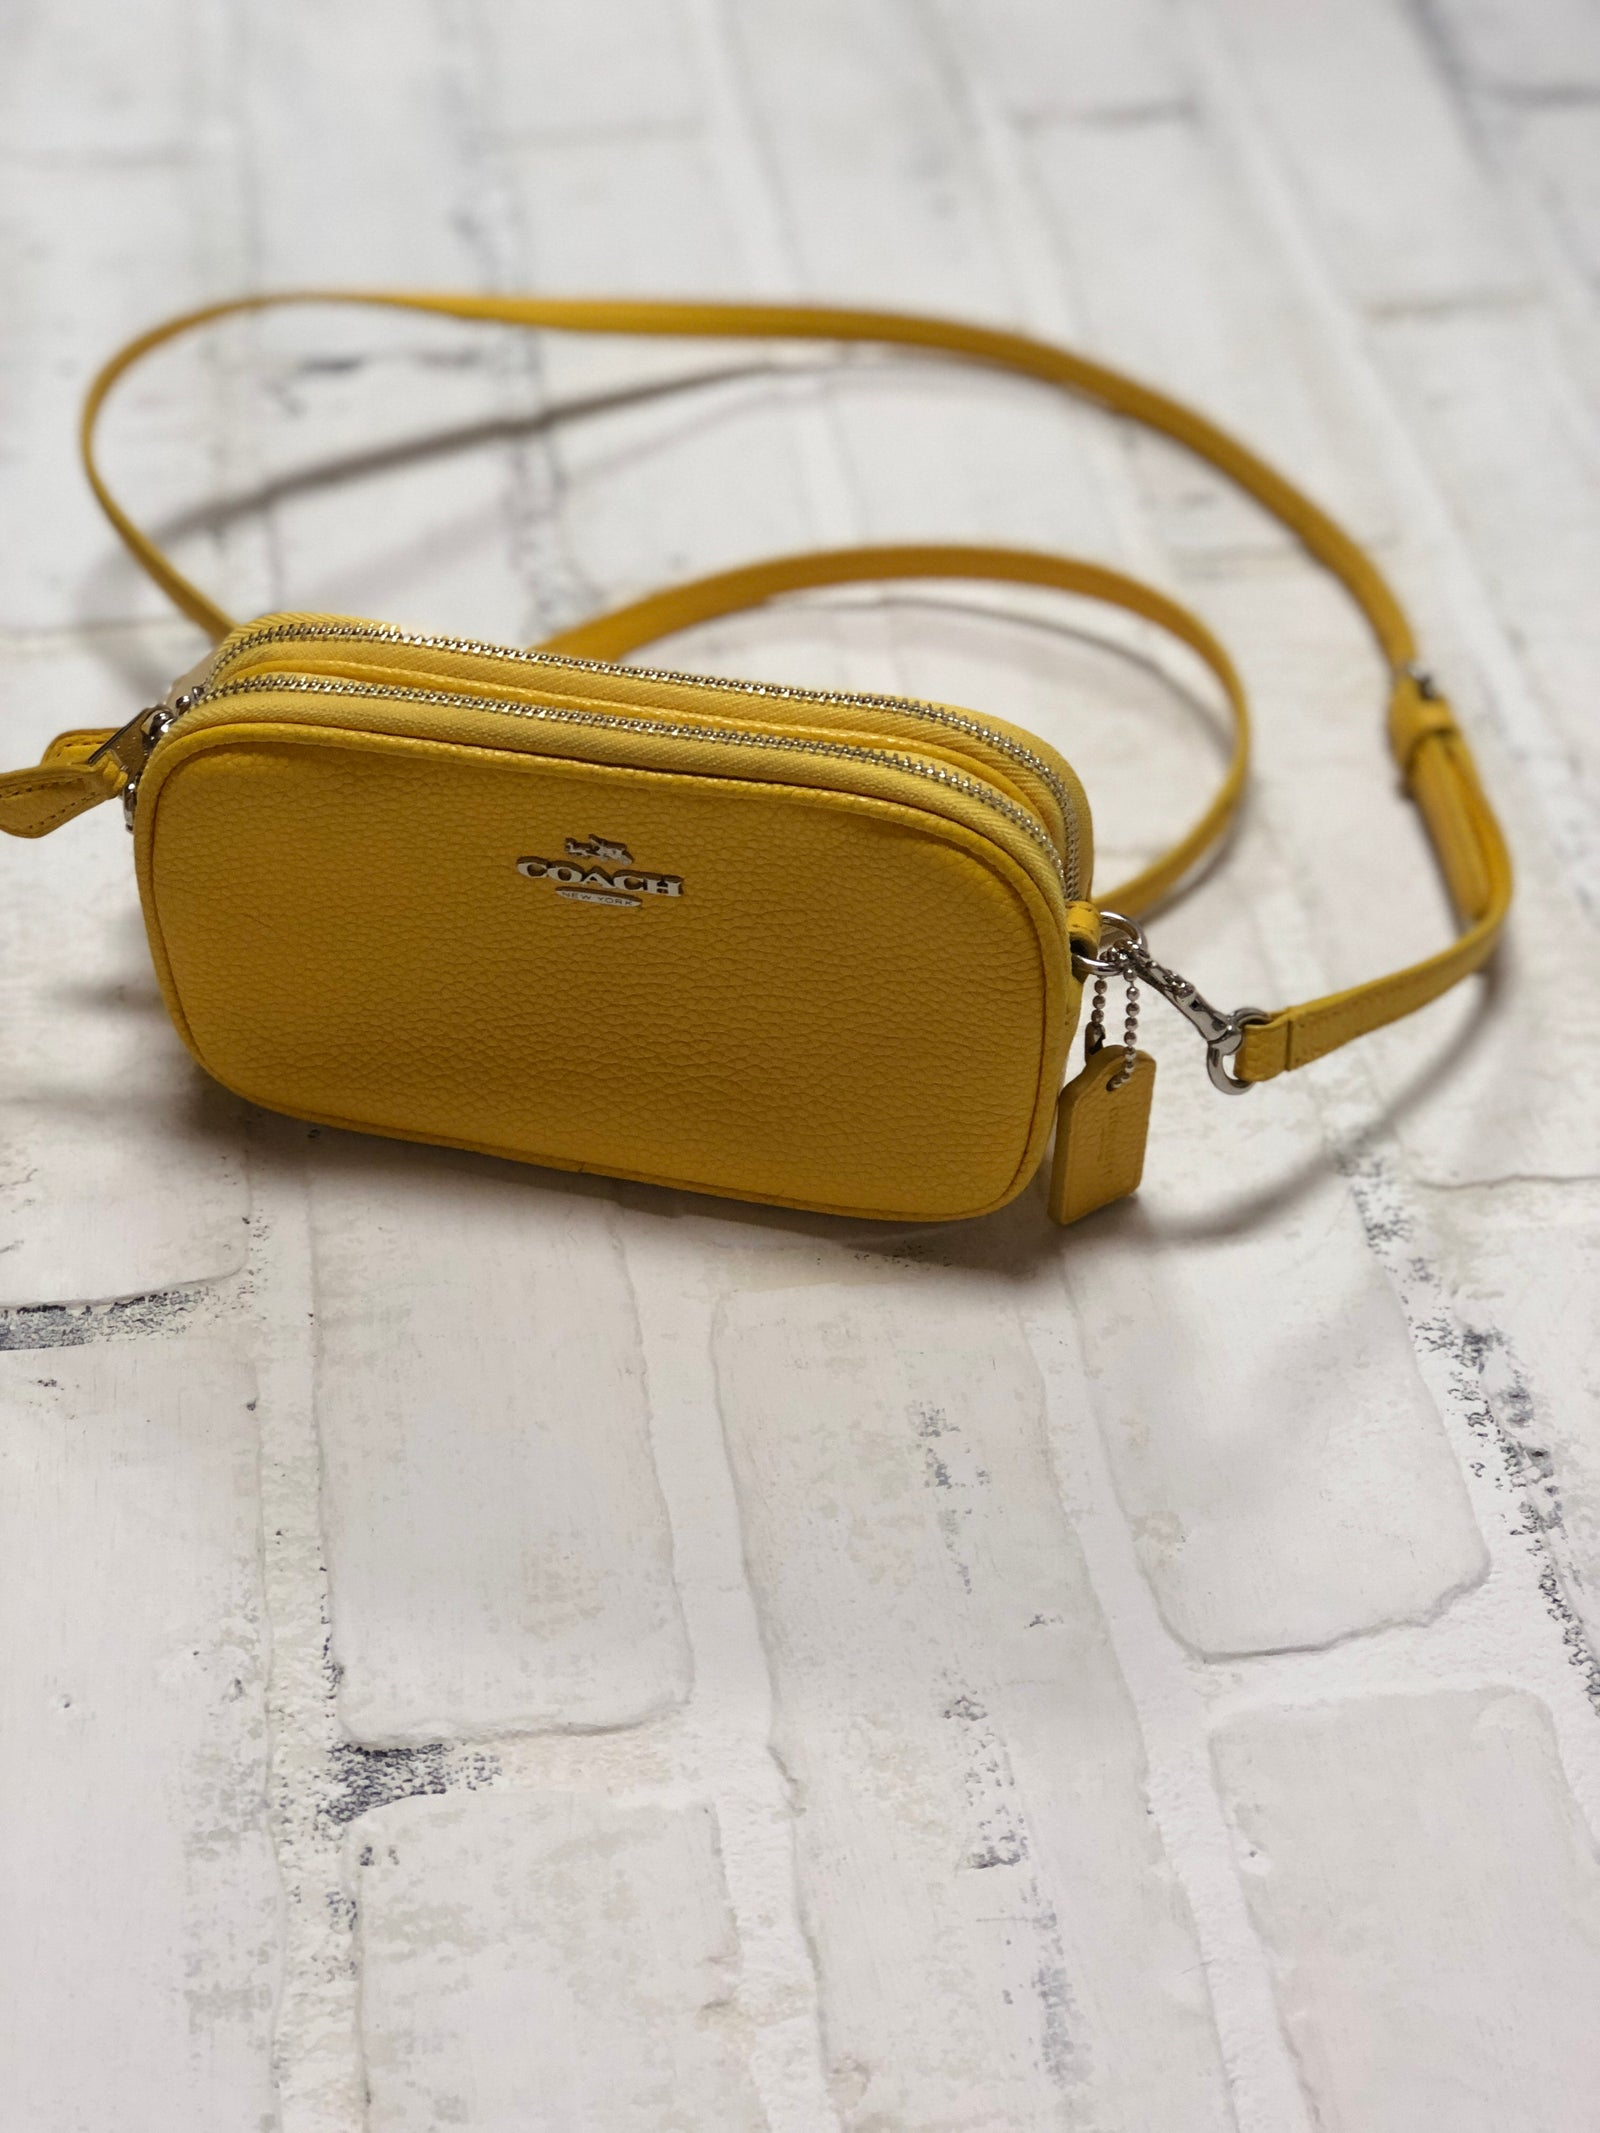 Coach Mini Cross Body